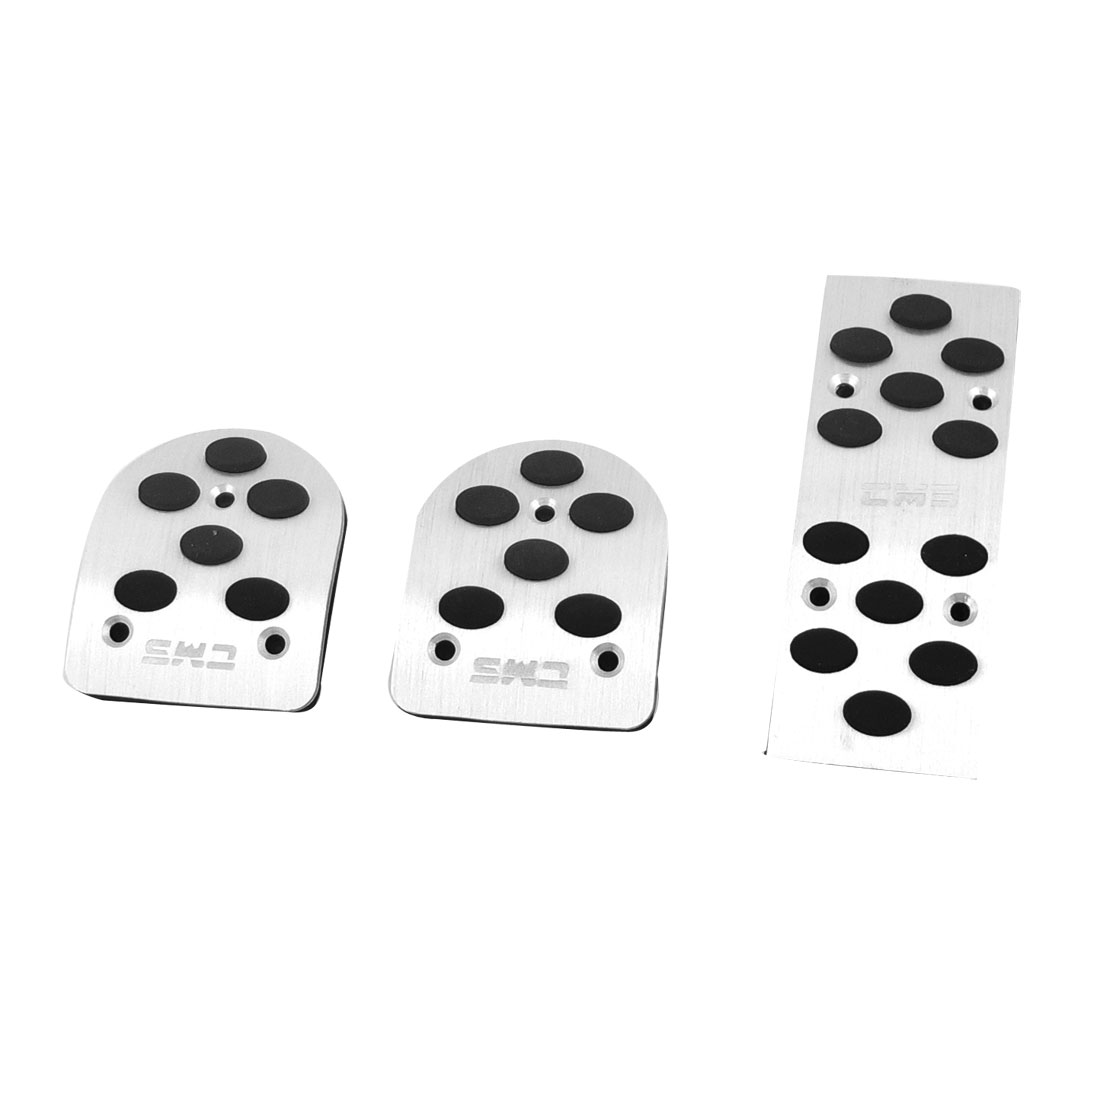 3 Pcs Stainless Steel Automatic Gas Brake Pedal Cover for Auto Cars